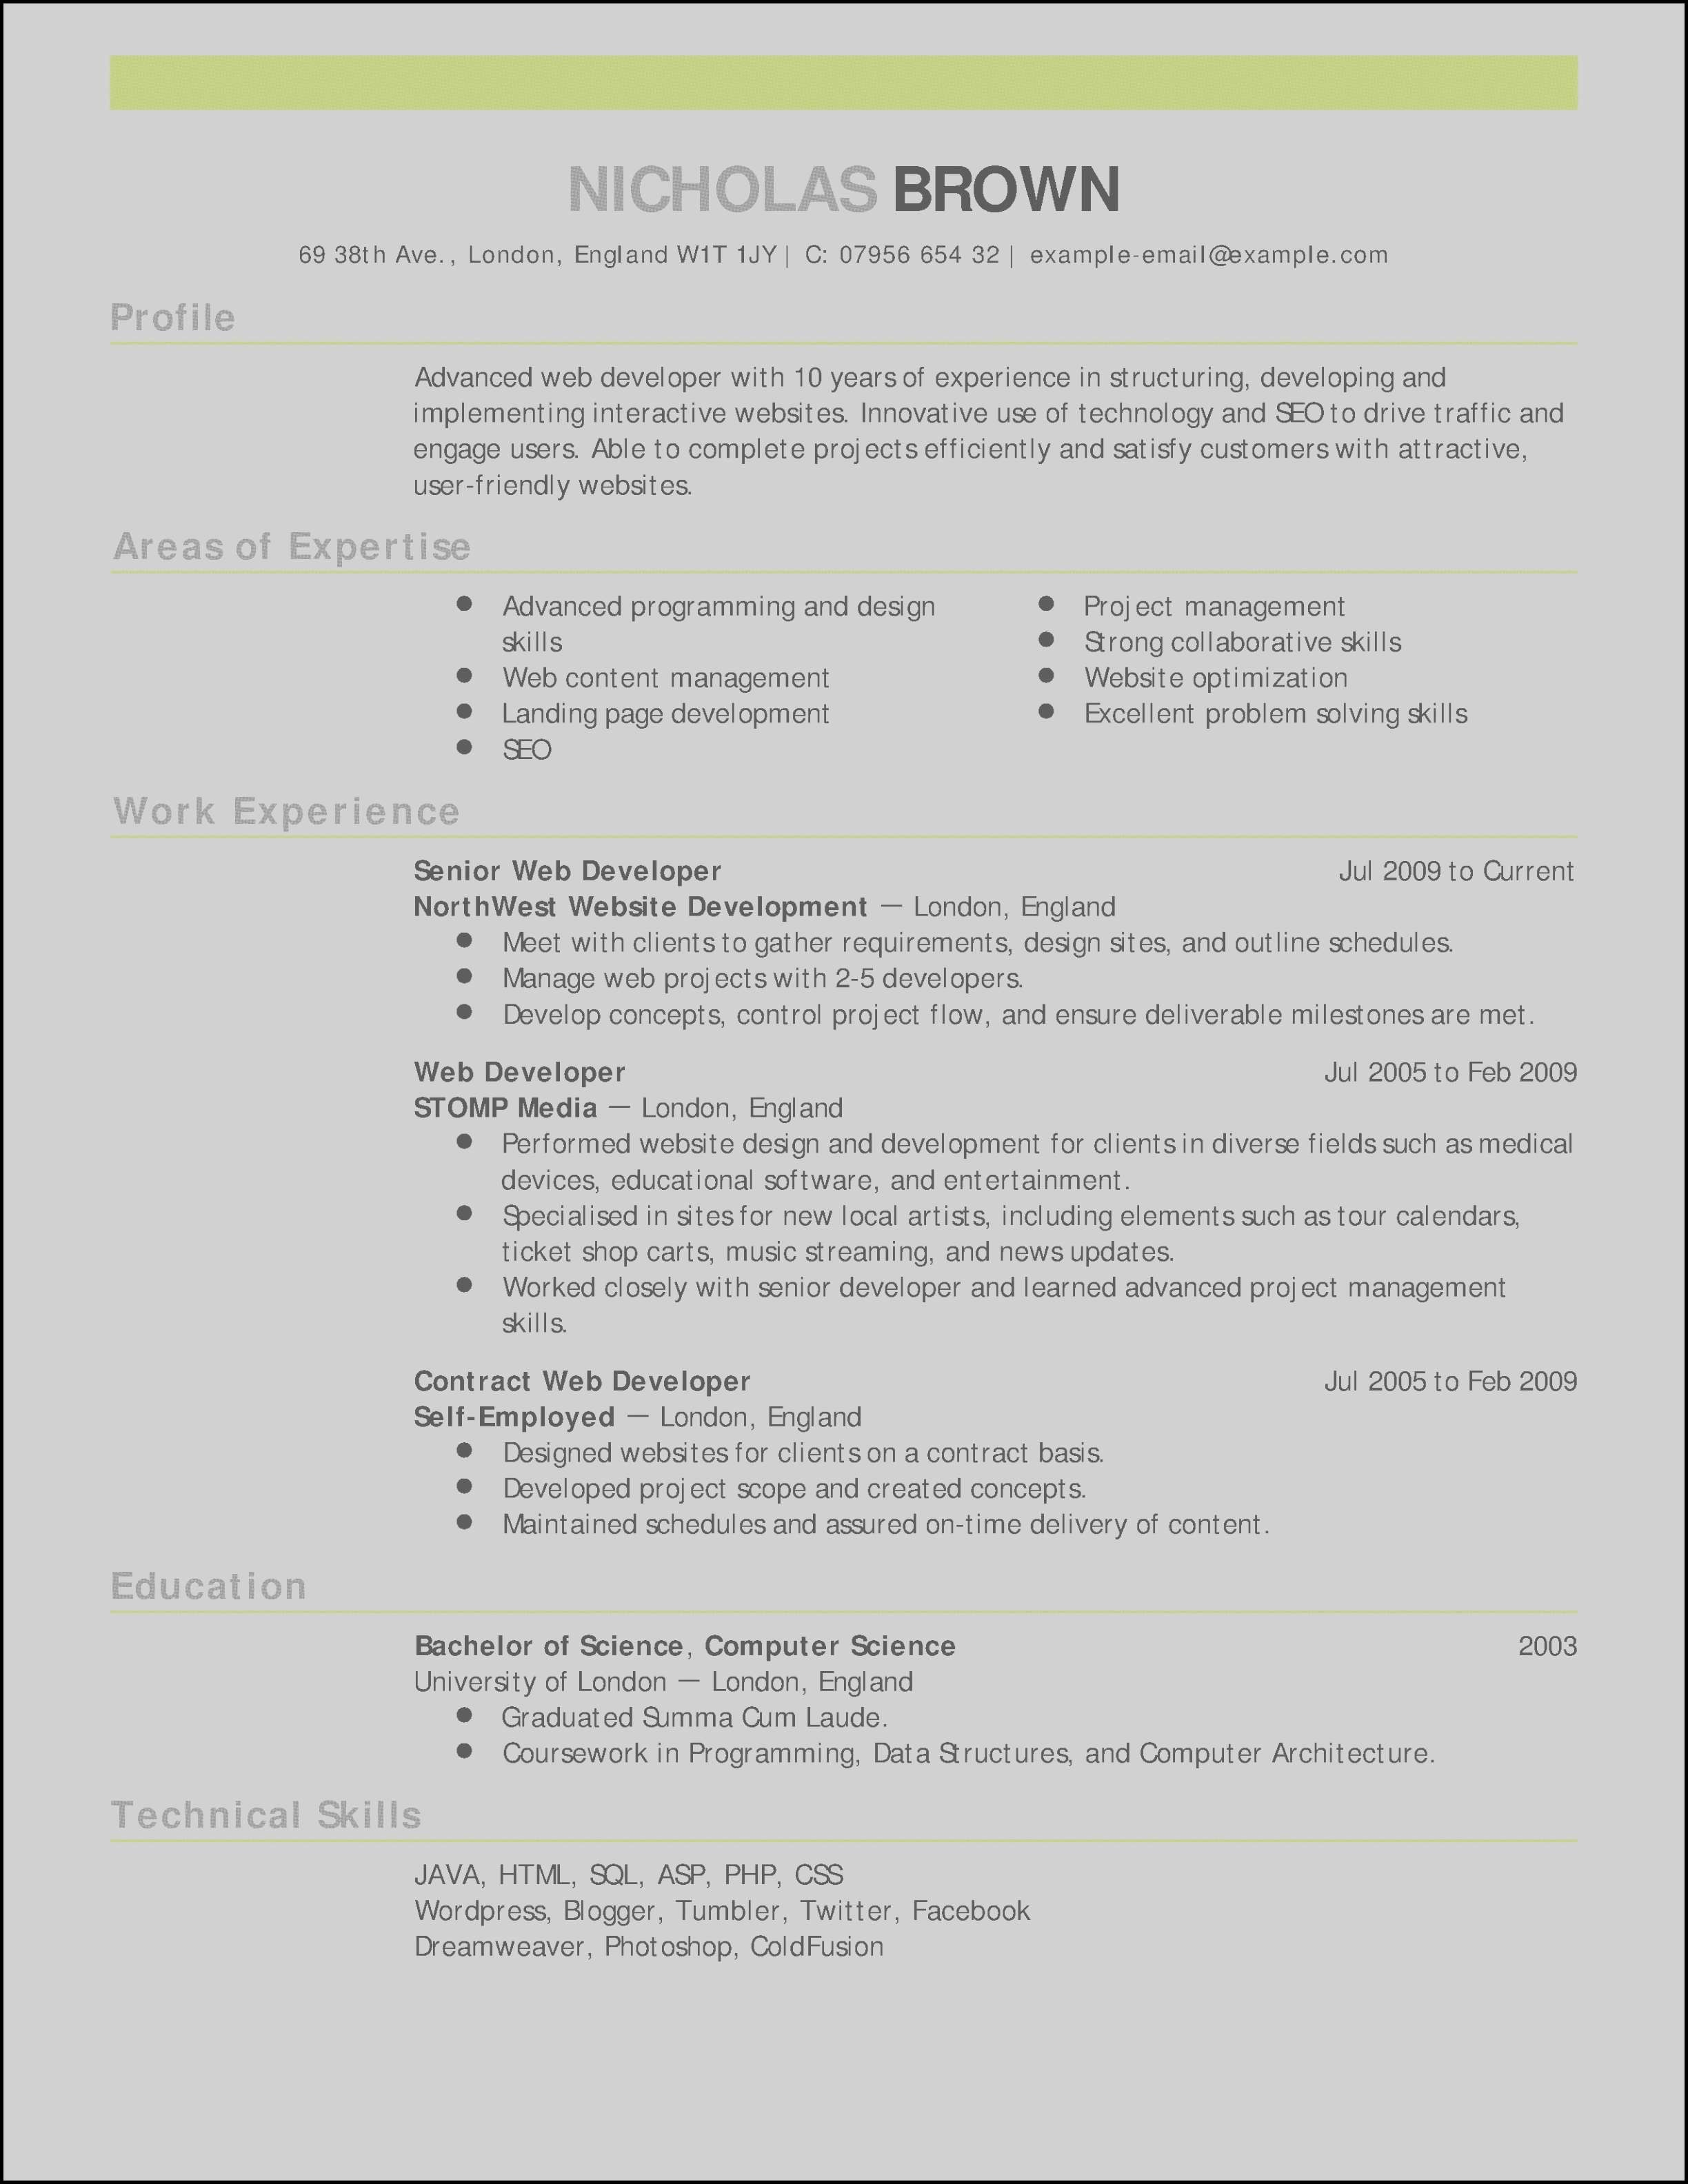 Resume Writing Companies - 25 Fresh Resume Writing Panies